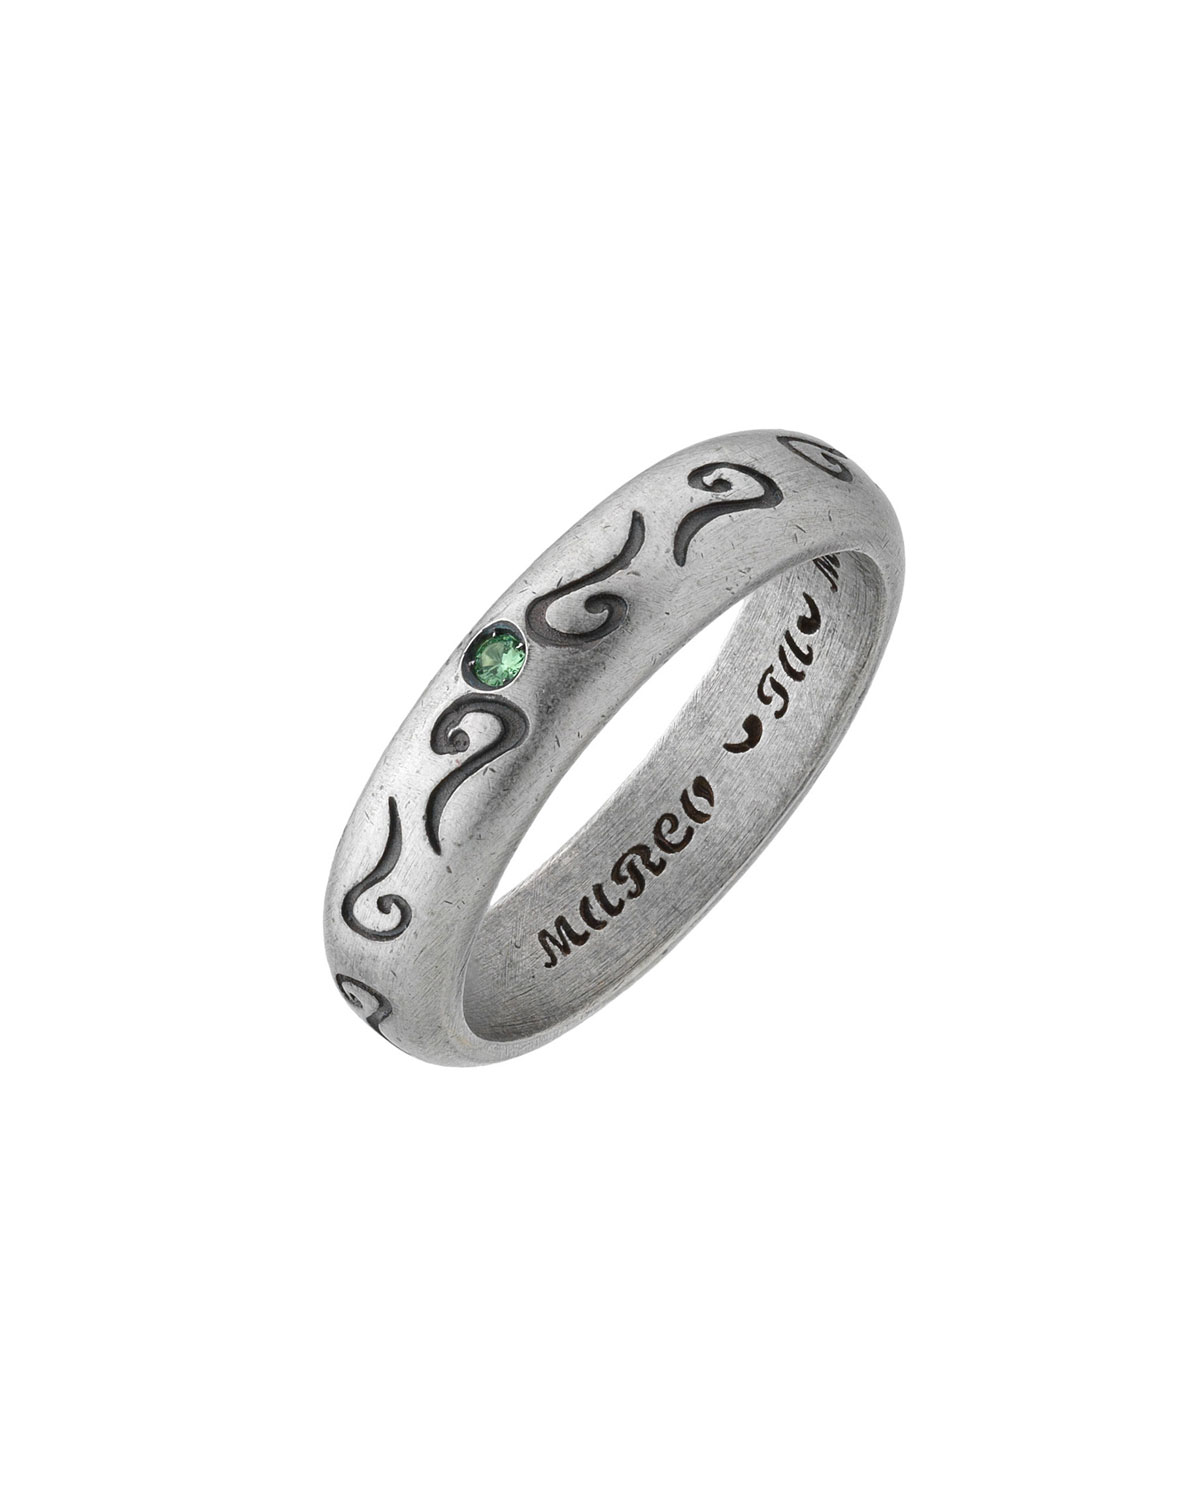 MARCO TA MOKO Men'S Silver Band Ring With Green Sapphire, Size 10